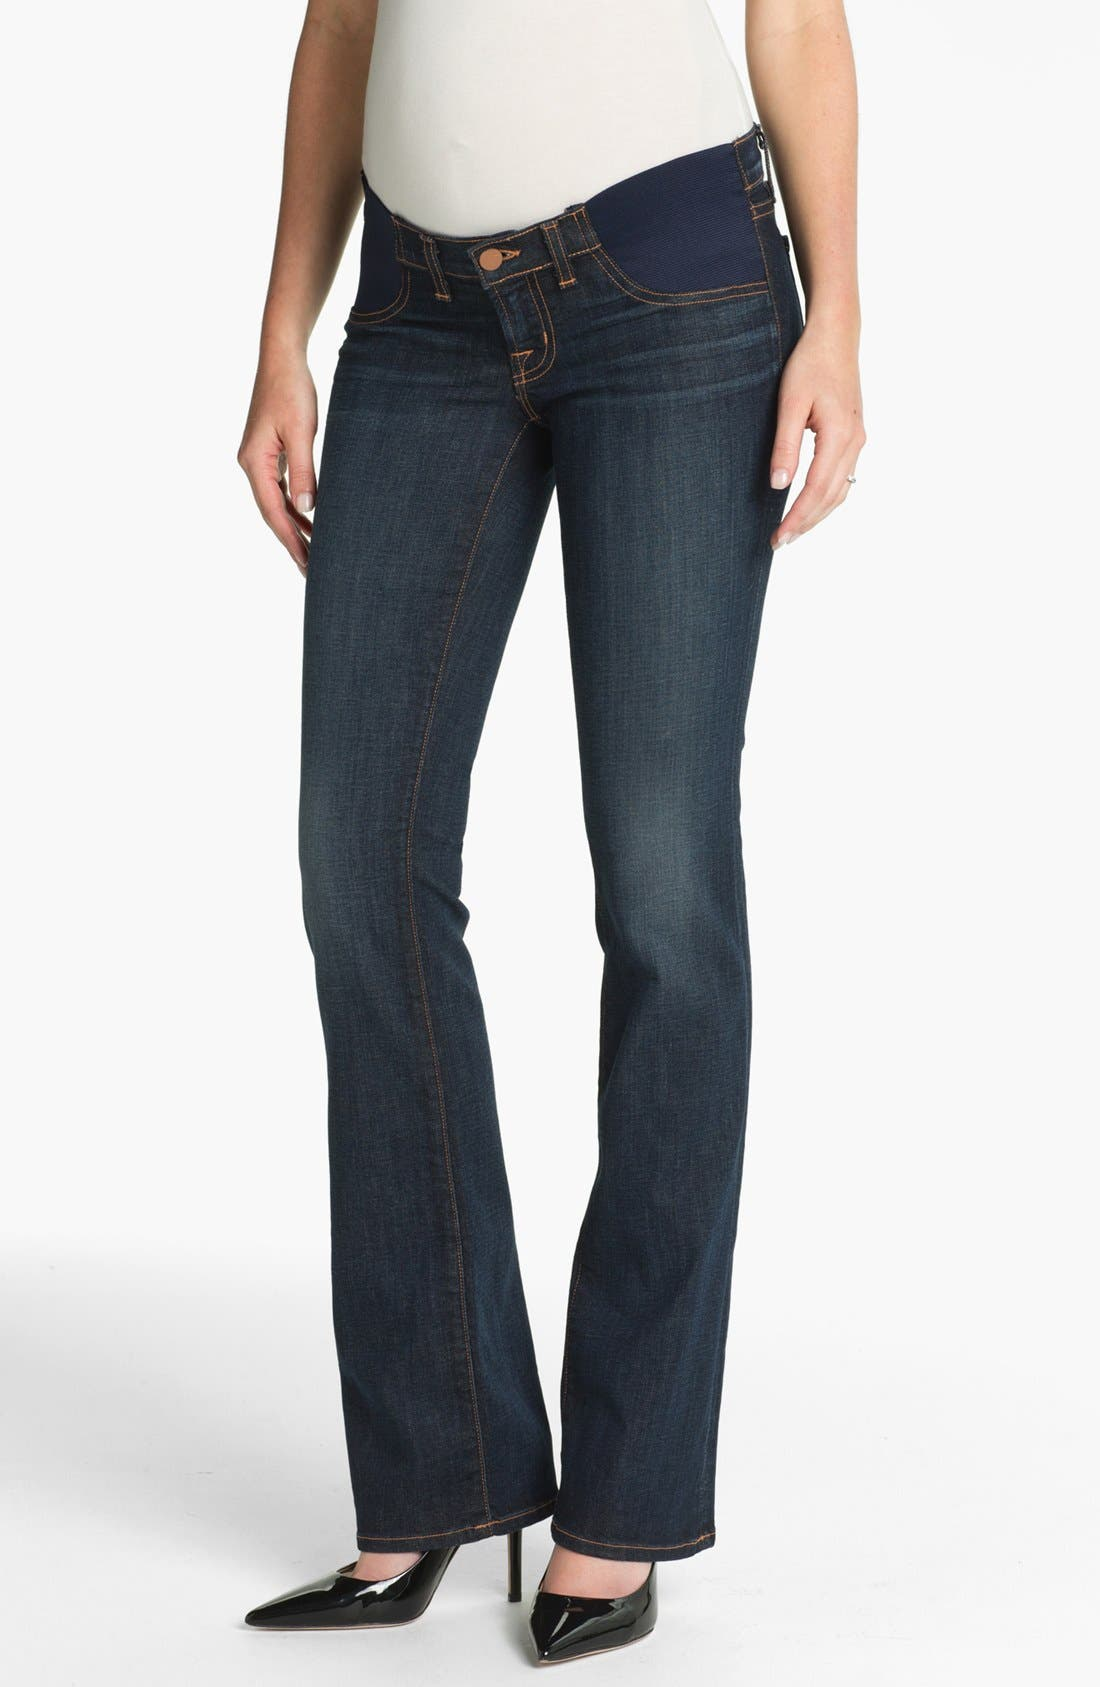 Alternate Image 1 Selected - J Brand Maternity Straight Leg Stretch Jeans (Dark Vintage)